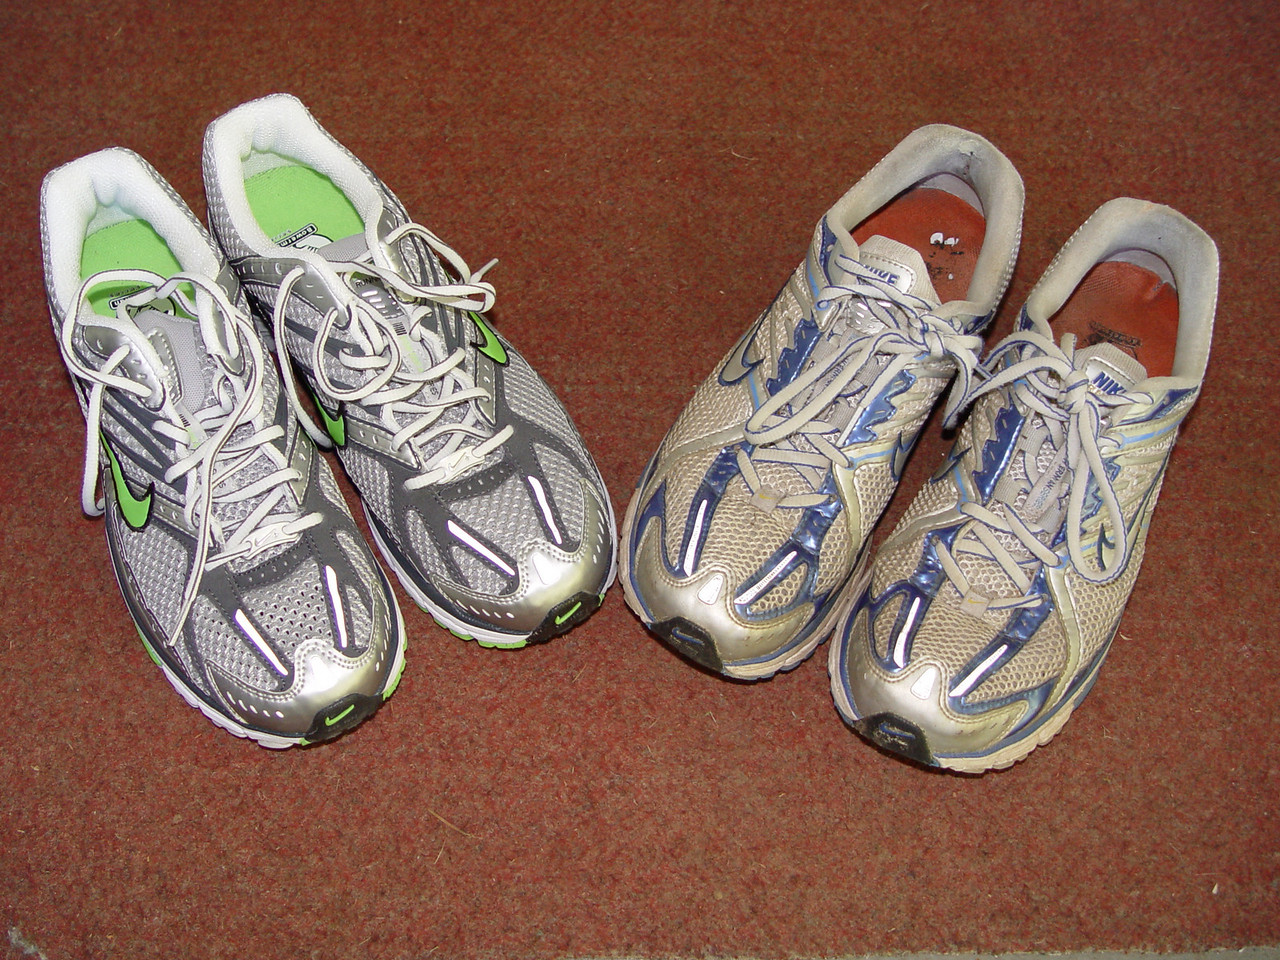 After 850 miles its time for some new running shoes.